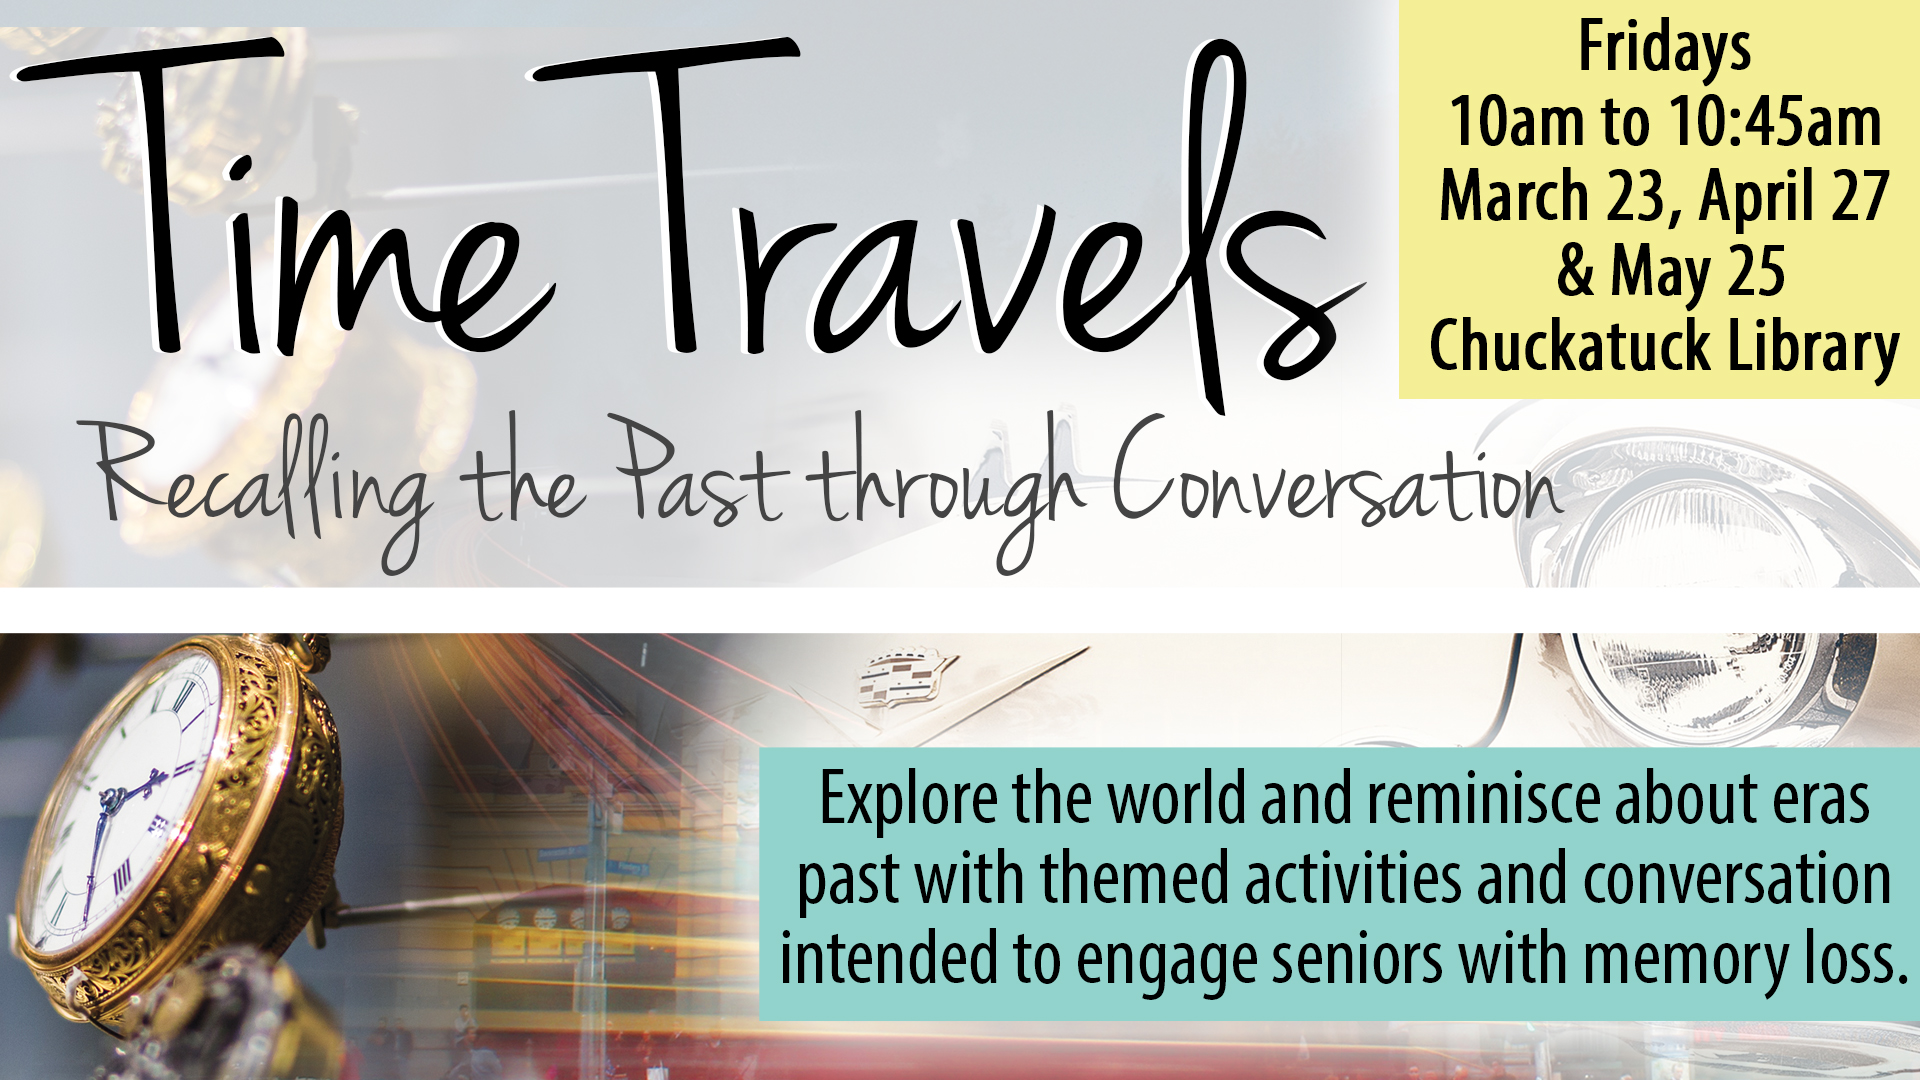 Time Travels: Recalling the Past through Conversation